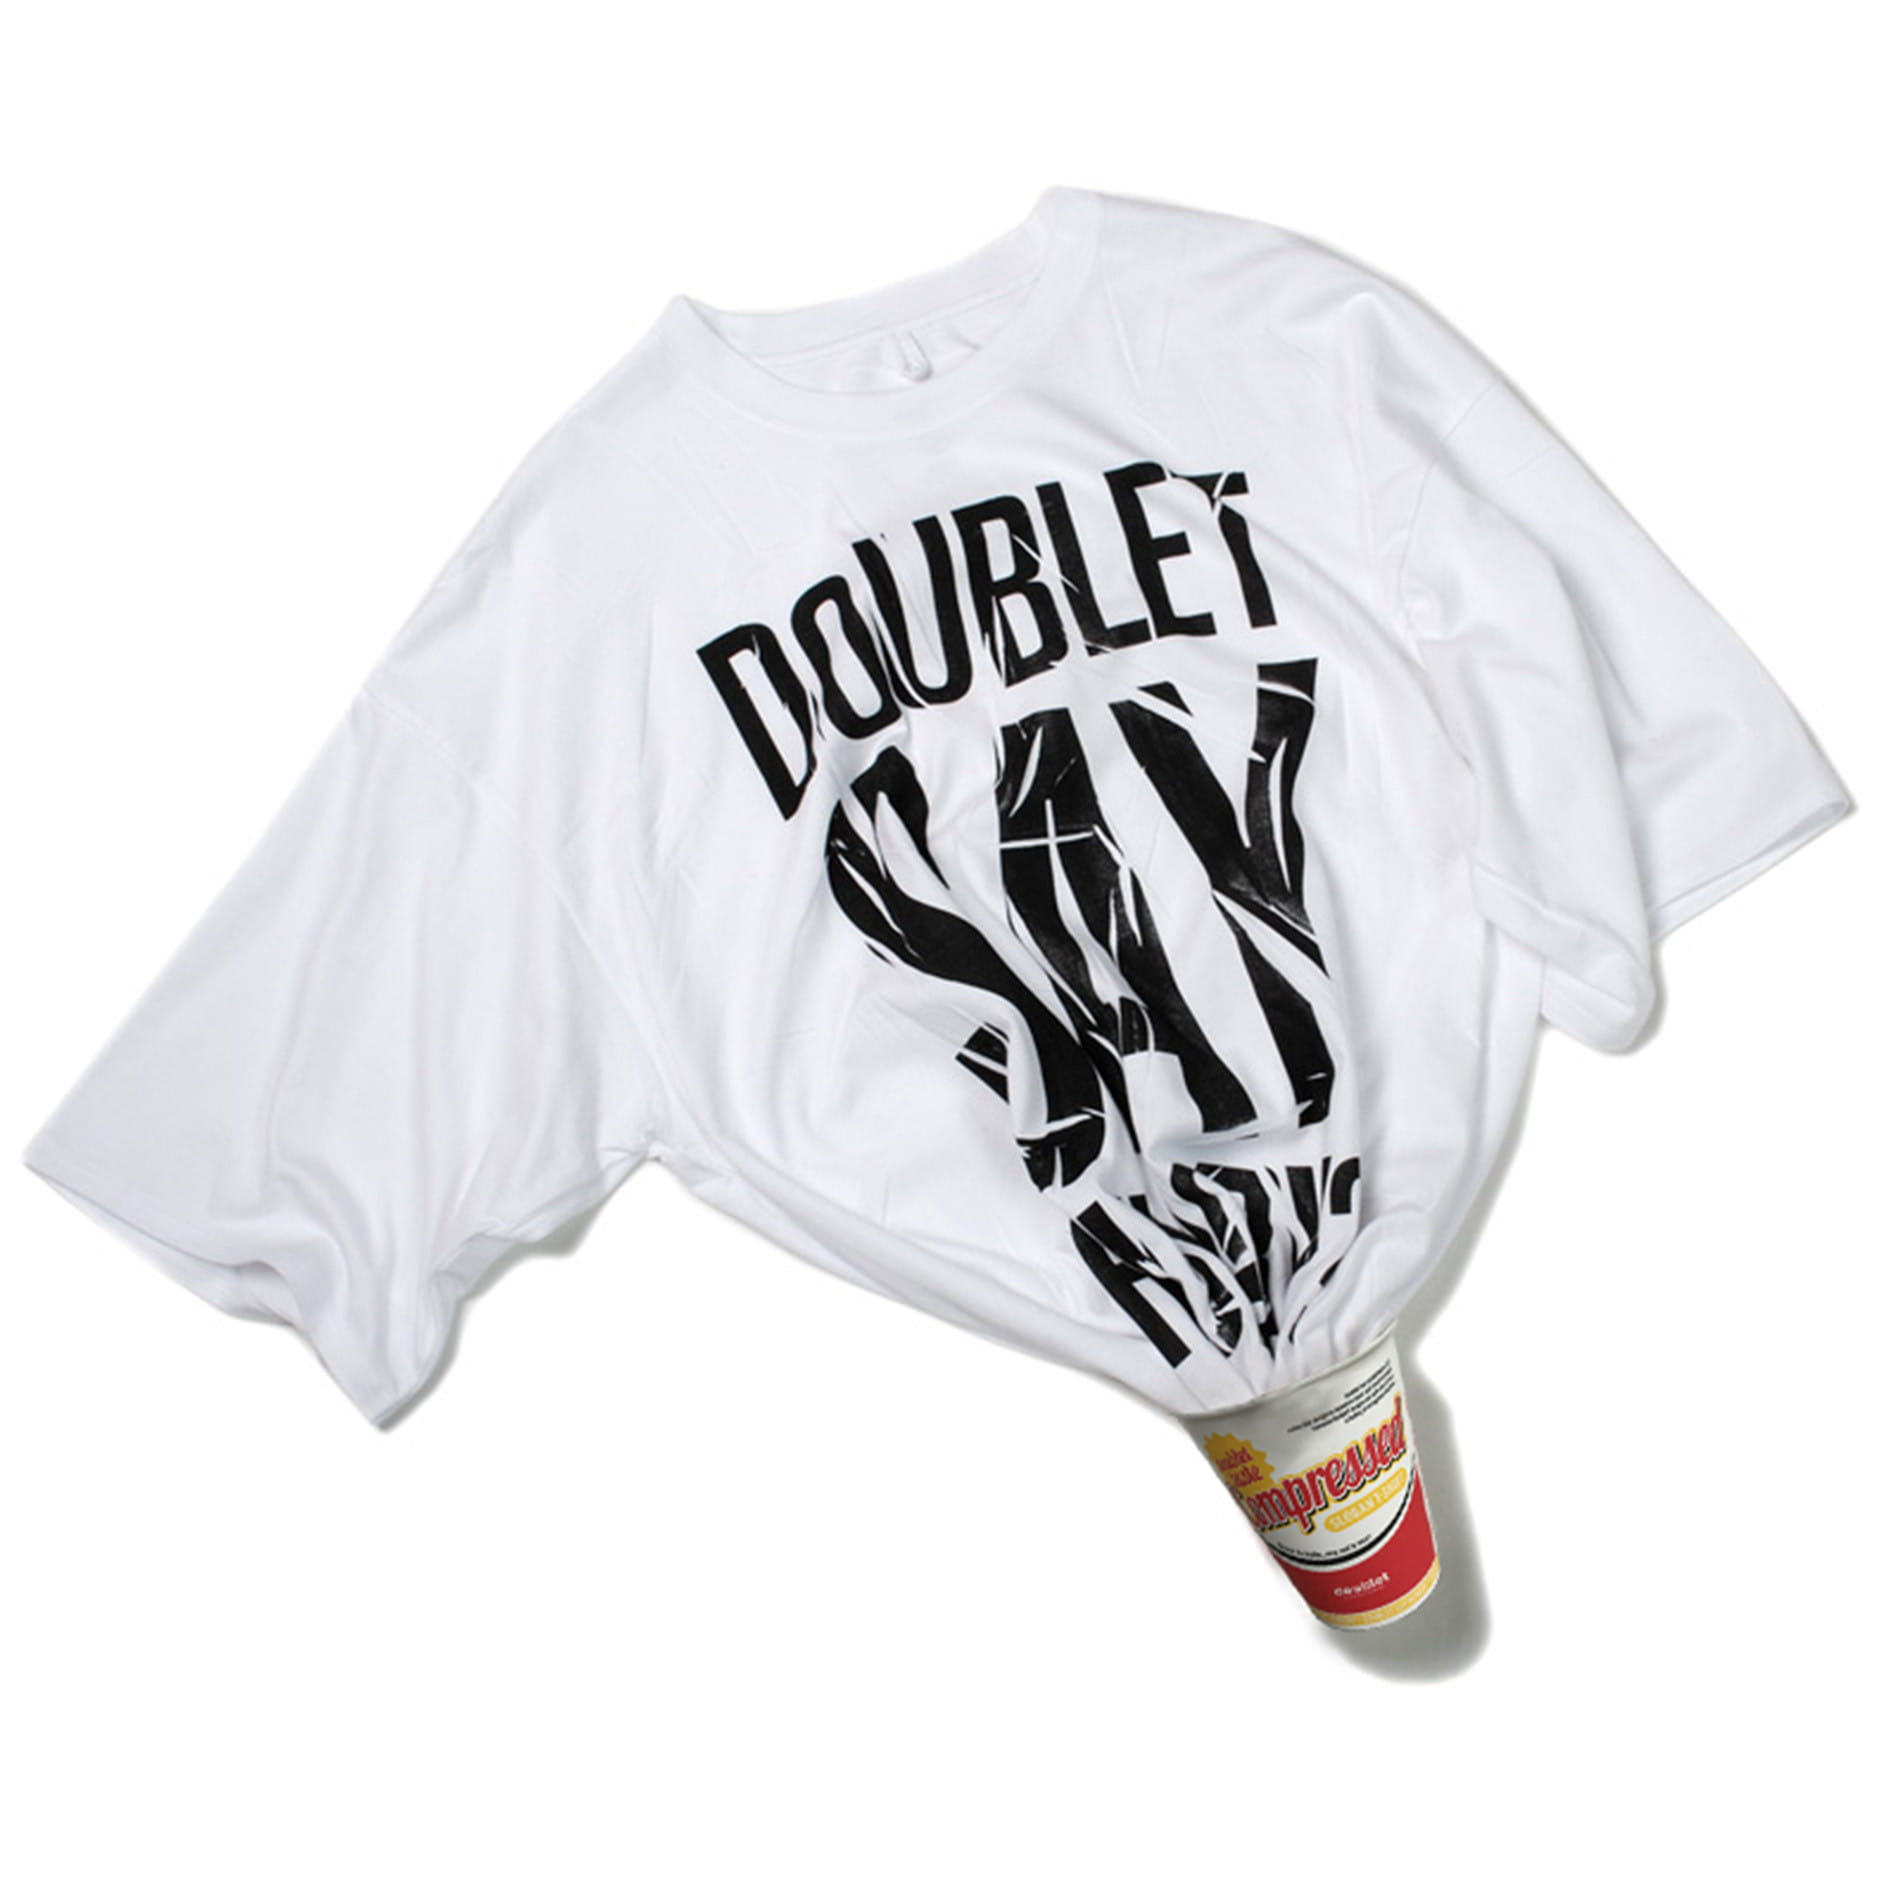 【doublet】MEN COMPRESSED SLOGAN T-SHIRT IN THE INSTANT NOODLE